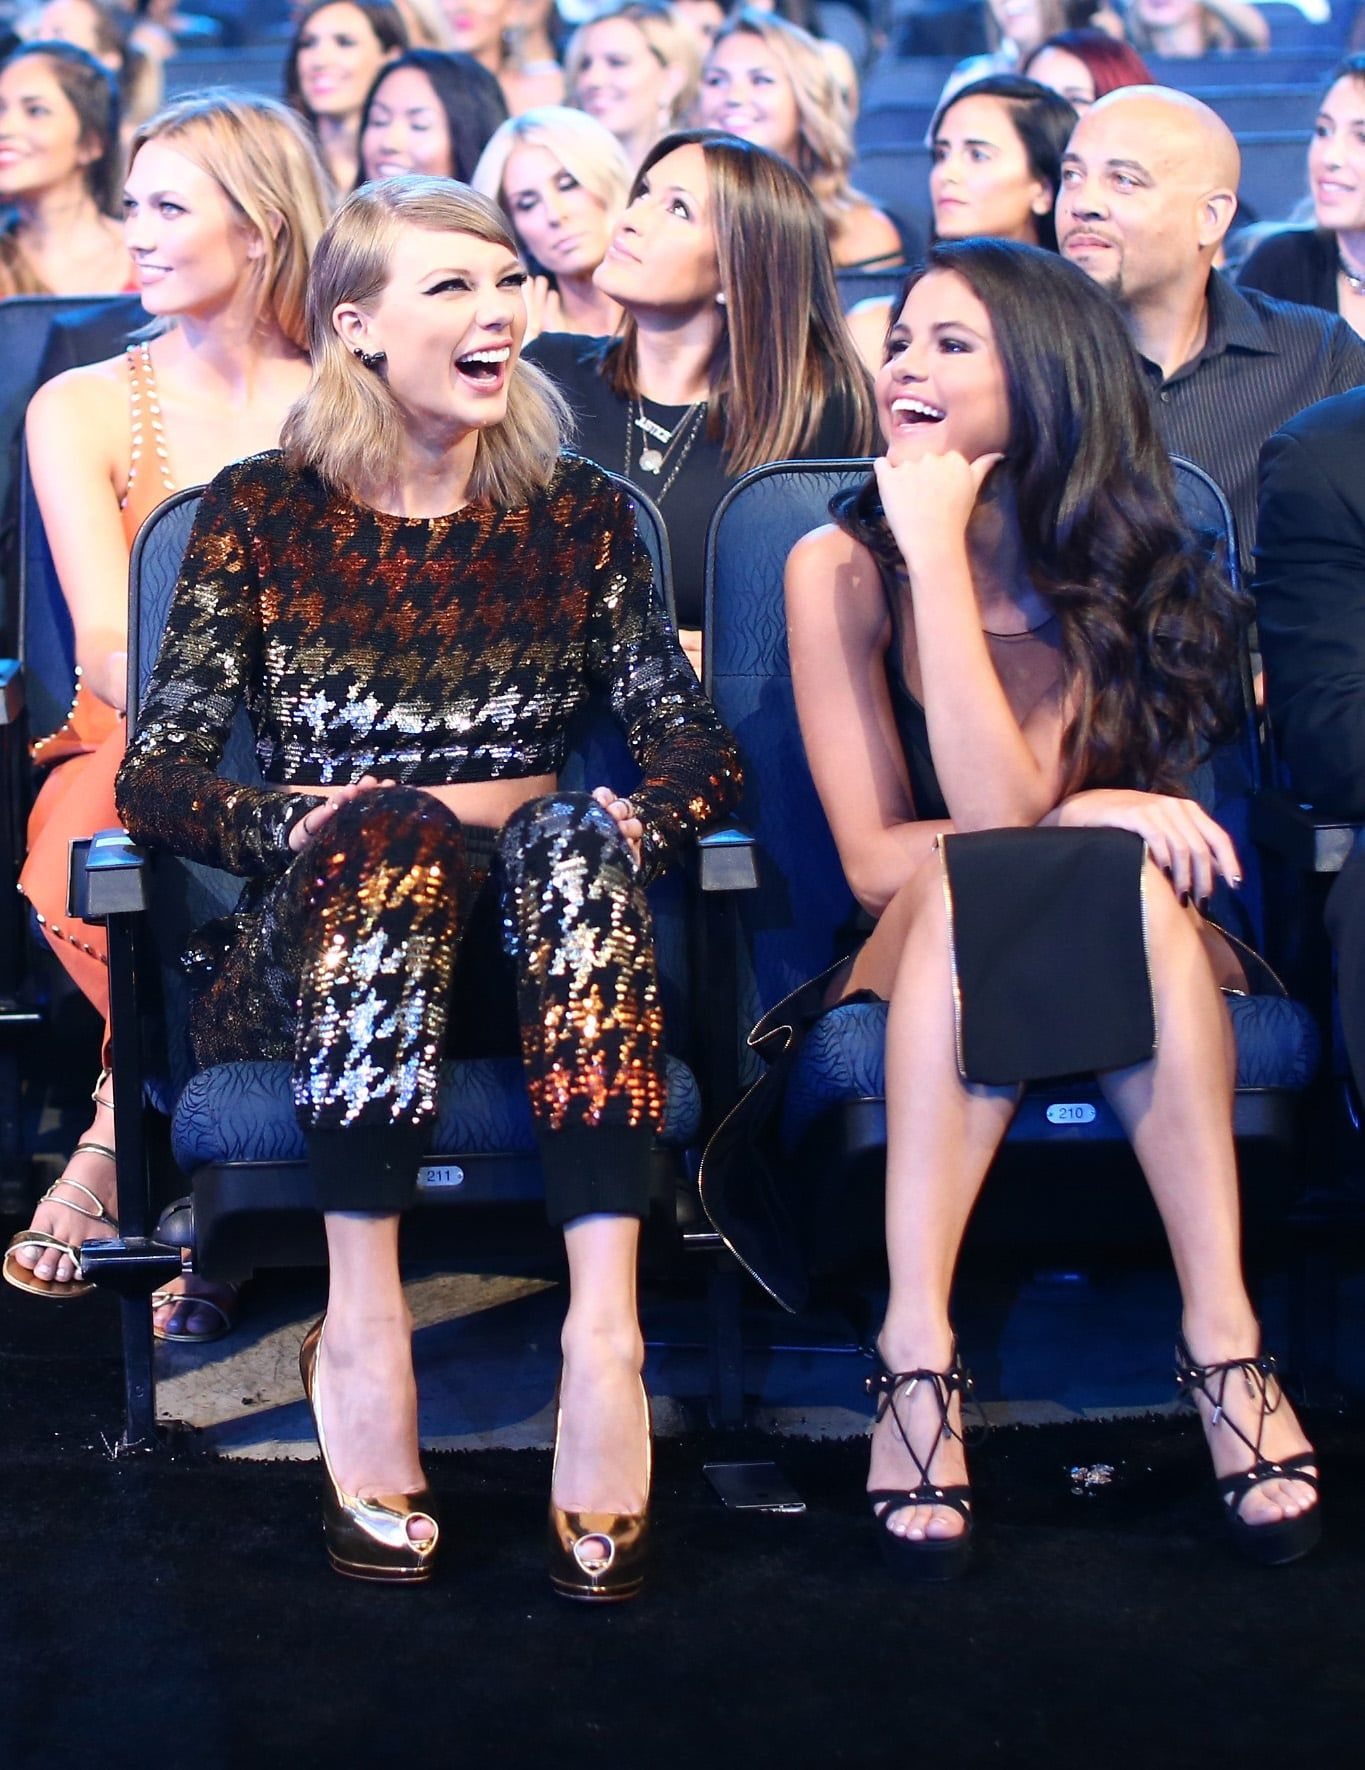 Taylor Swift And Selena Gomez Have The Cutest Bff Date Night At The Mtv Vmas Selena And Taylor Taylor Swift Pictures Selena Gomez